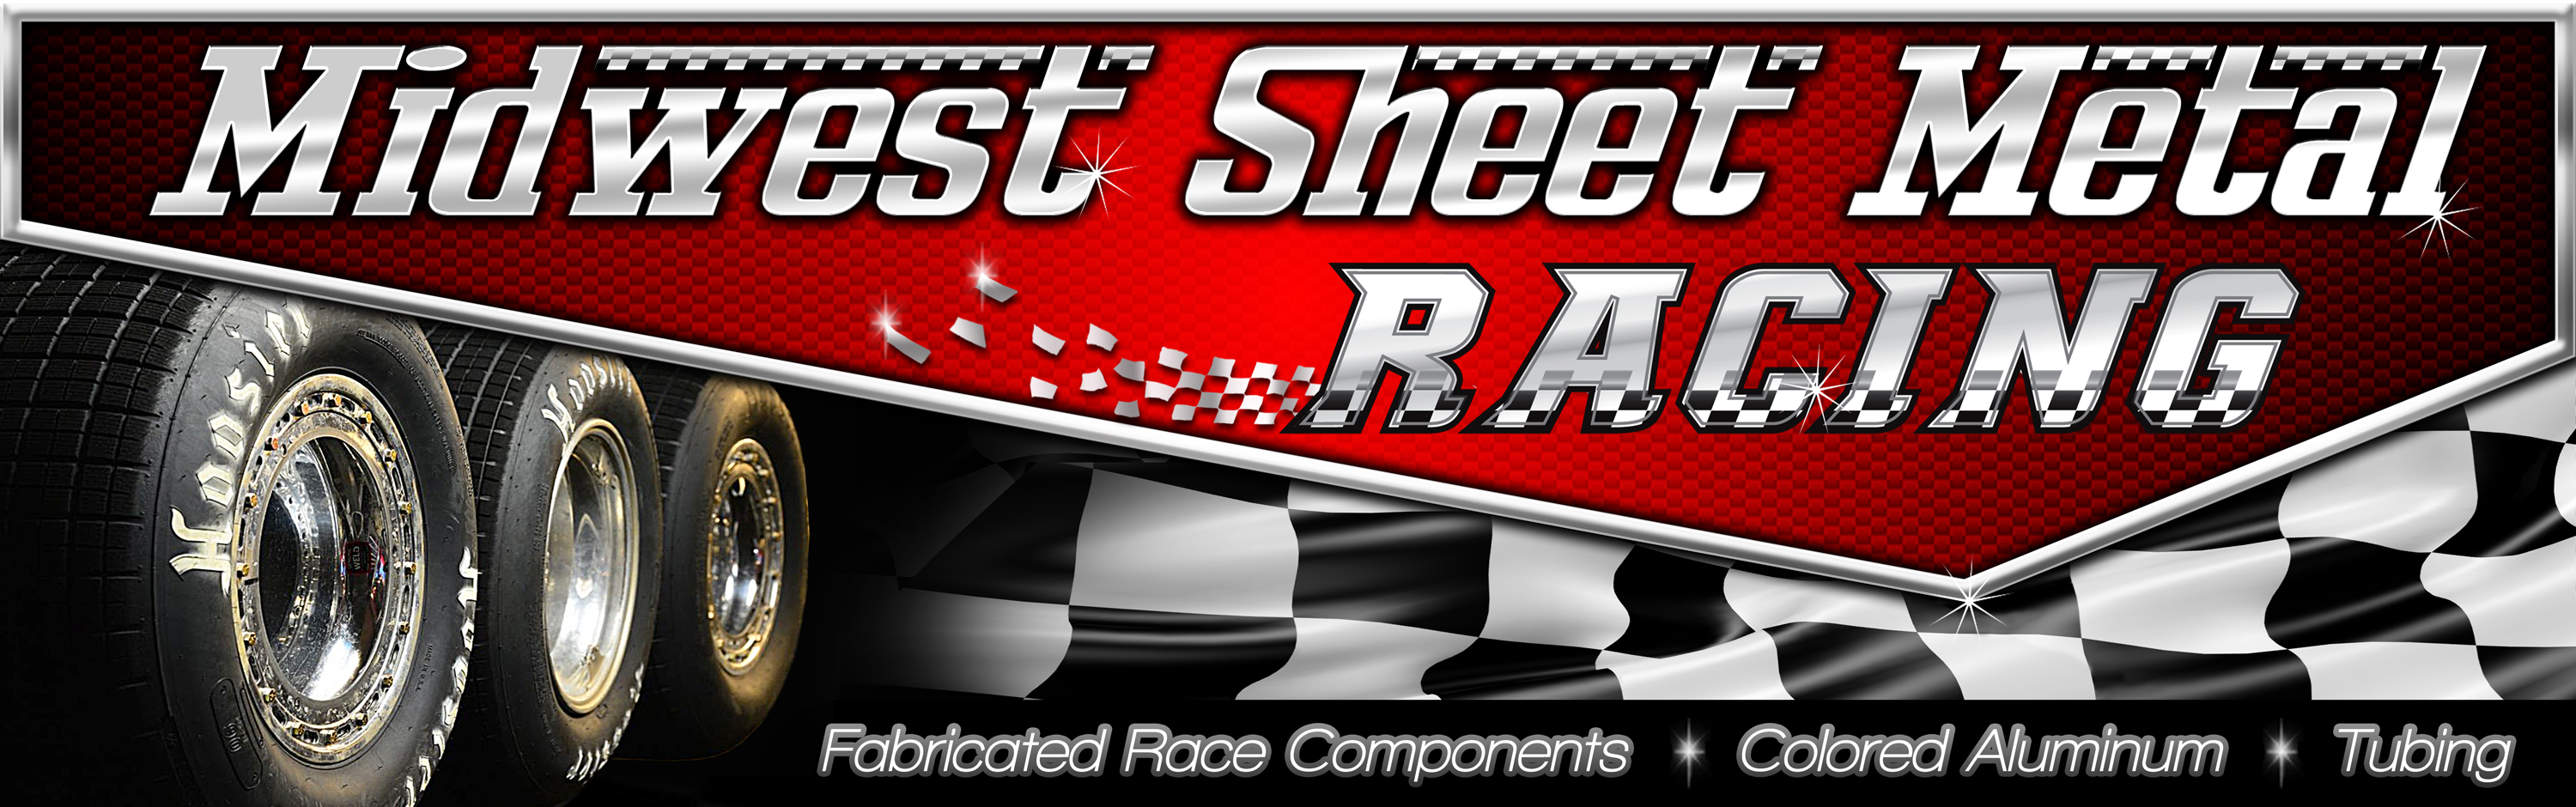 midwest sheet metal is excited to announce the launch of our new msm racing website as of. Black Bedroom Furniture Sets. Home Design Ideas